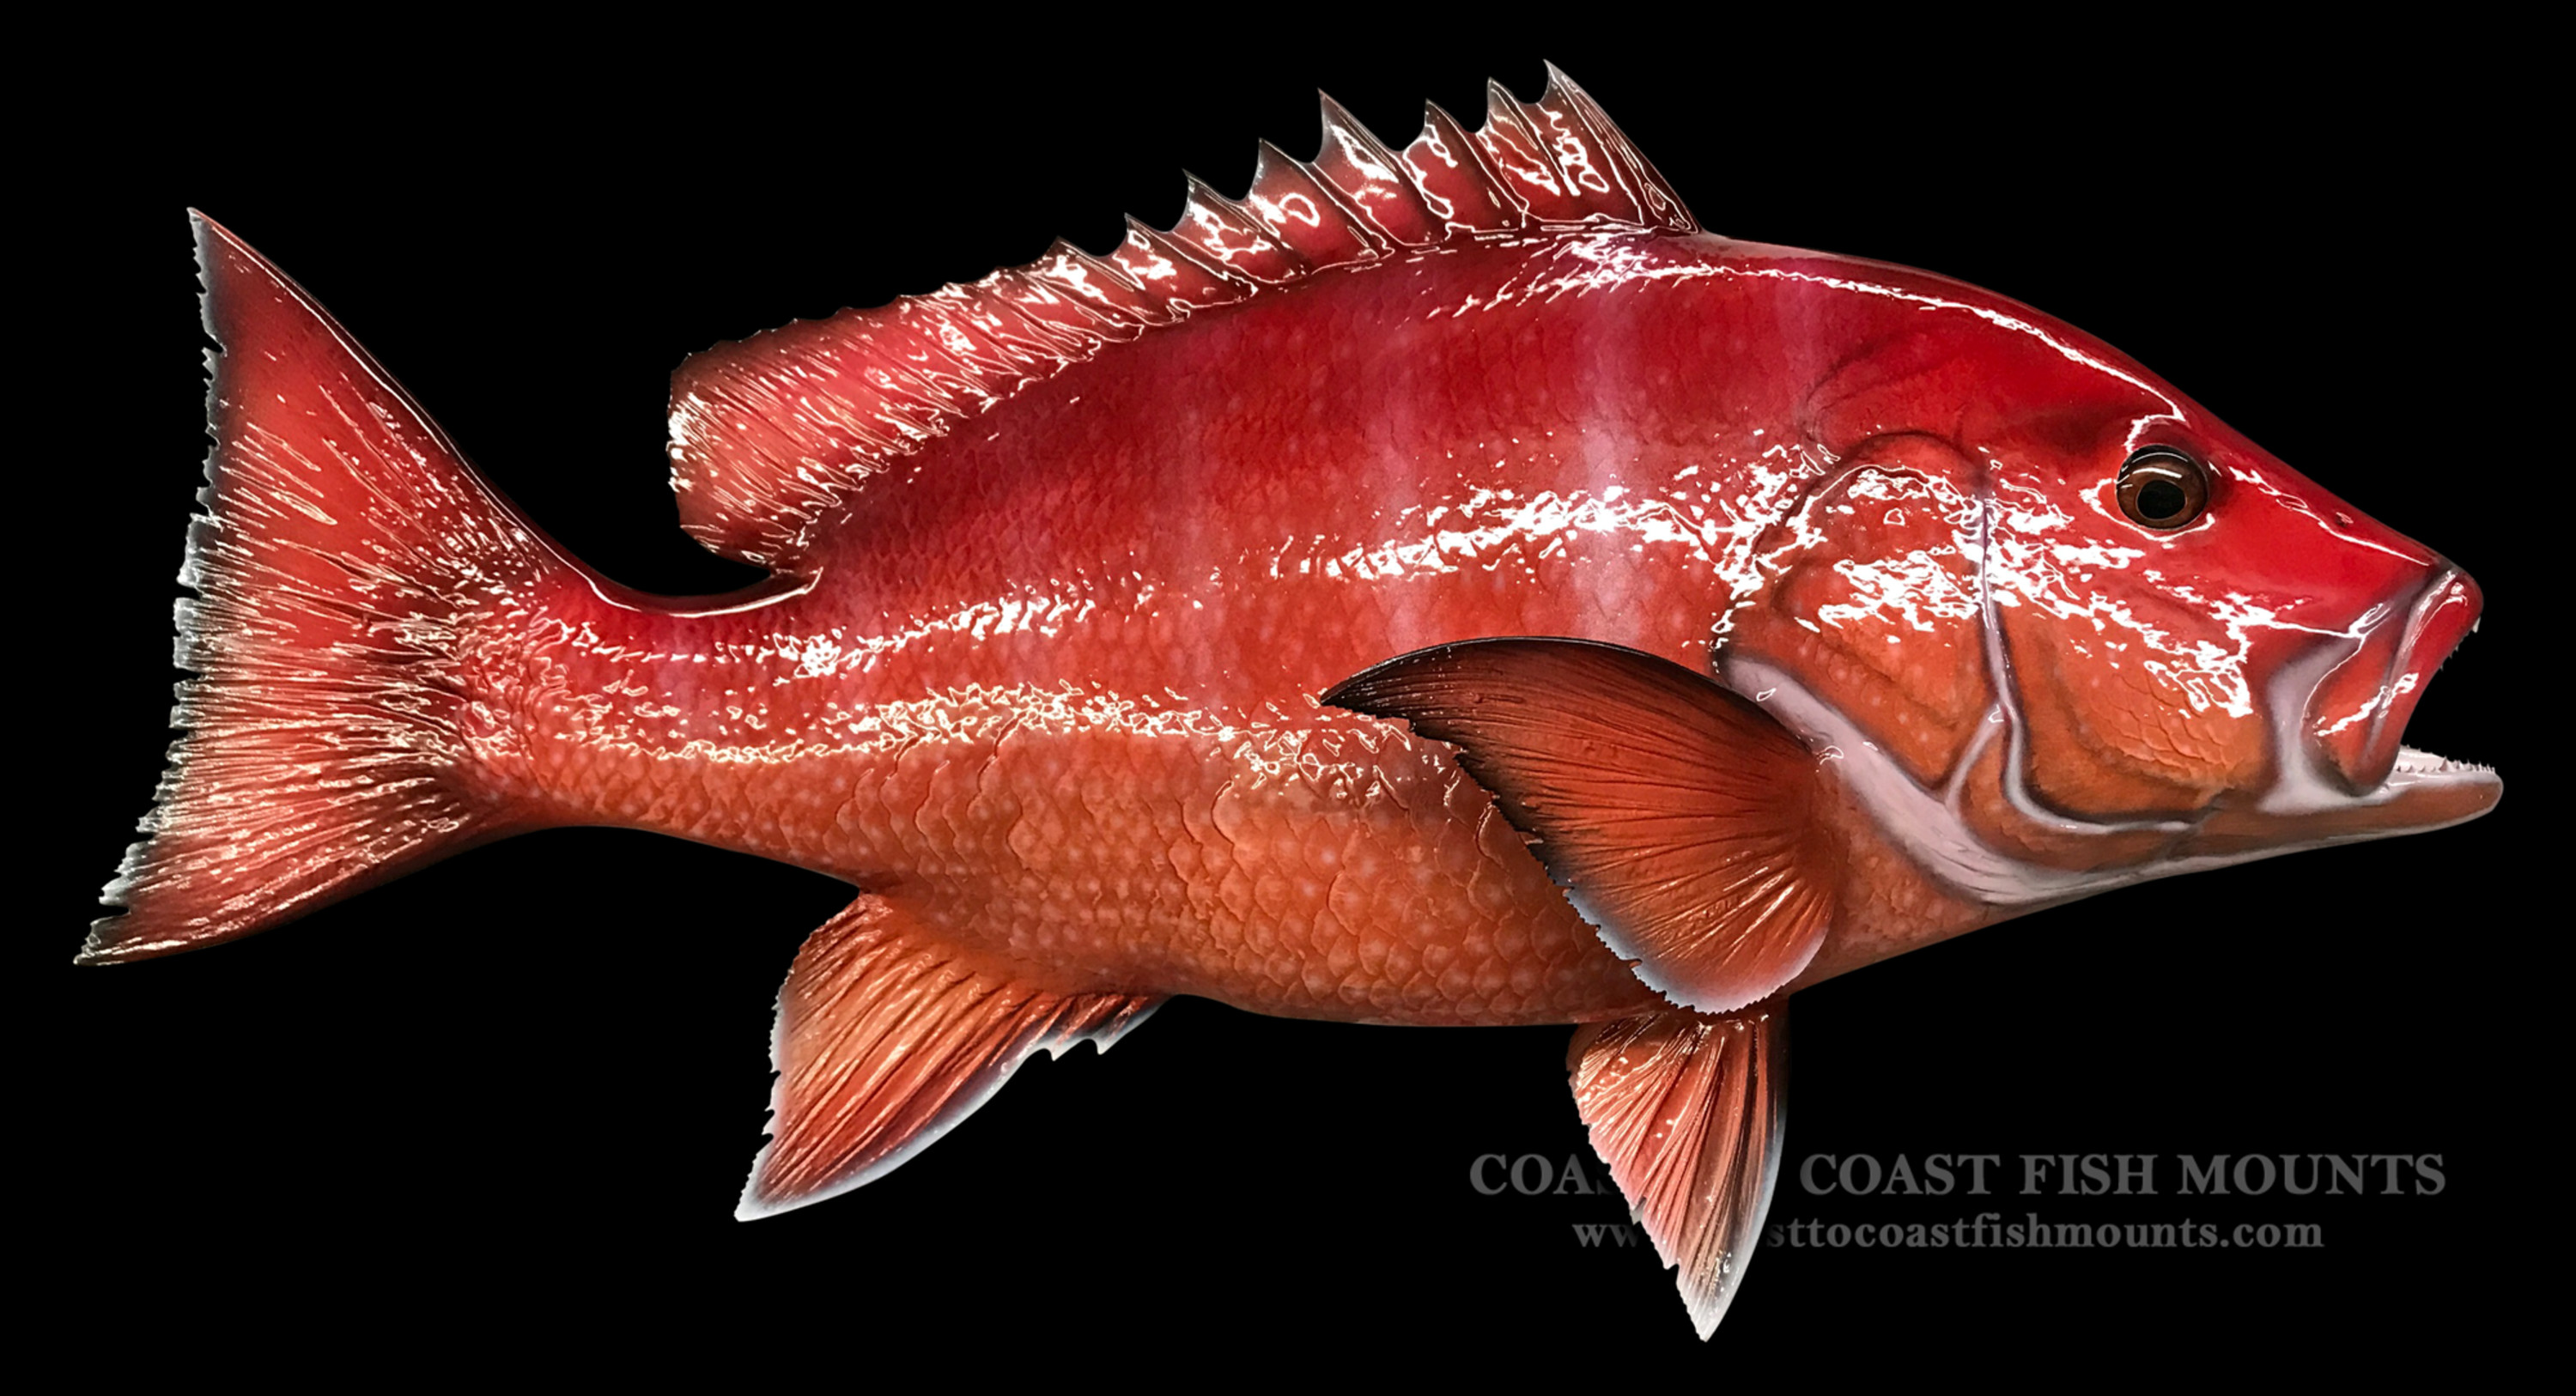 Red snapper fish mount and fish replicas coast to coast for Red snapper fishing